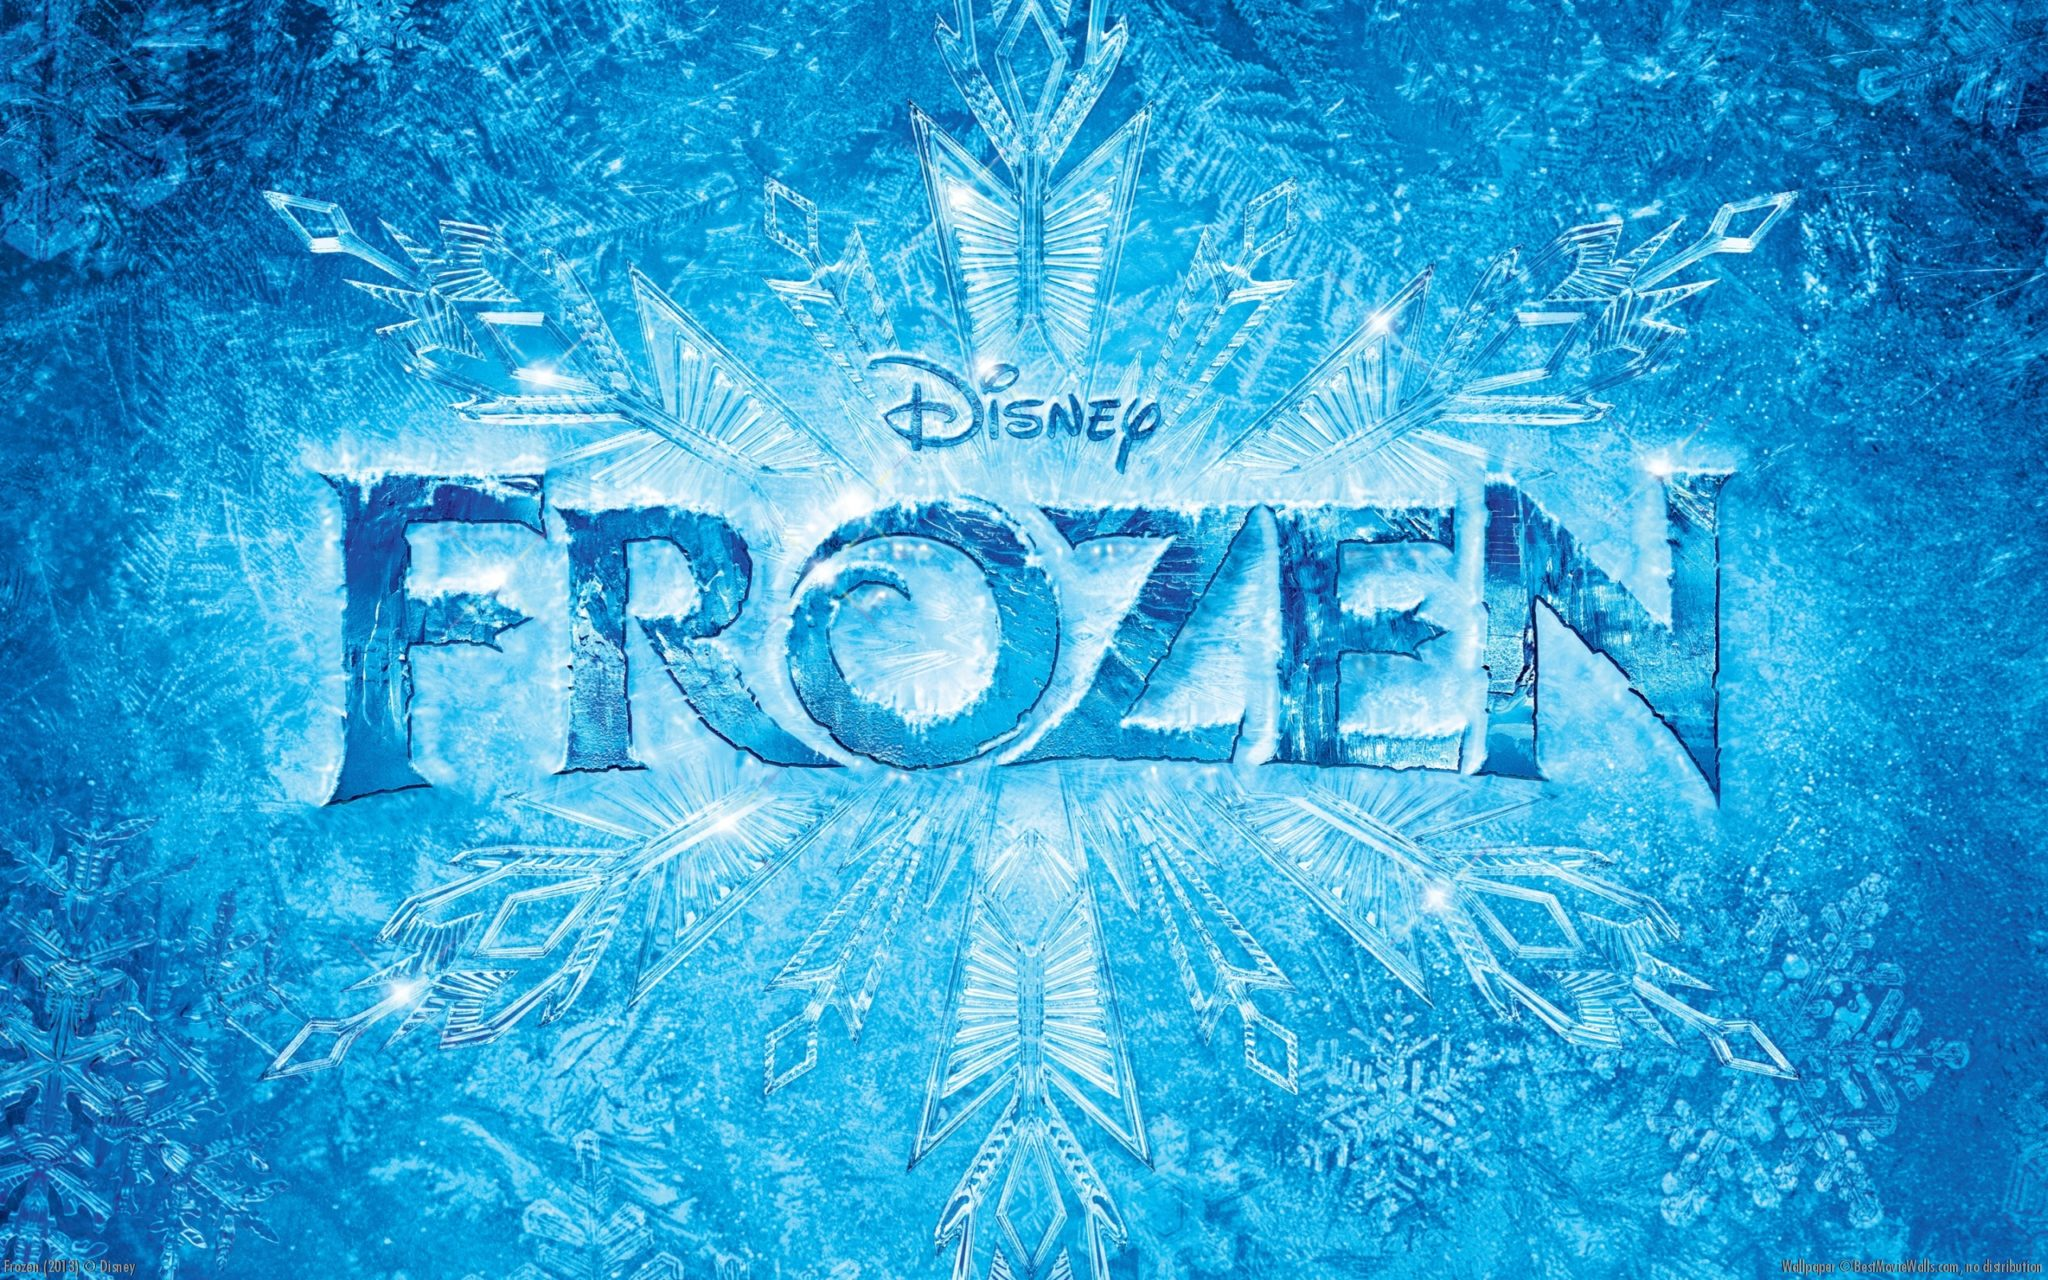 The Most Amazing amp Best Frozen Wallpapers On Web